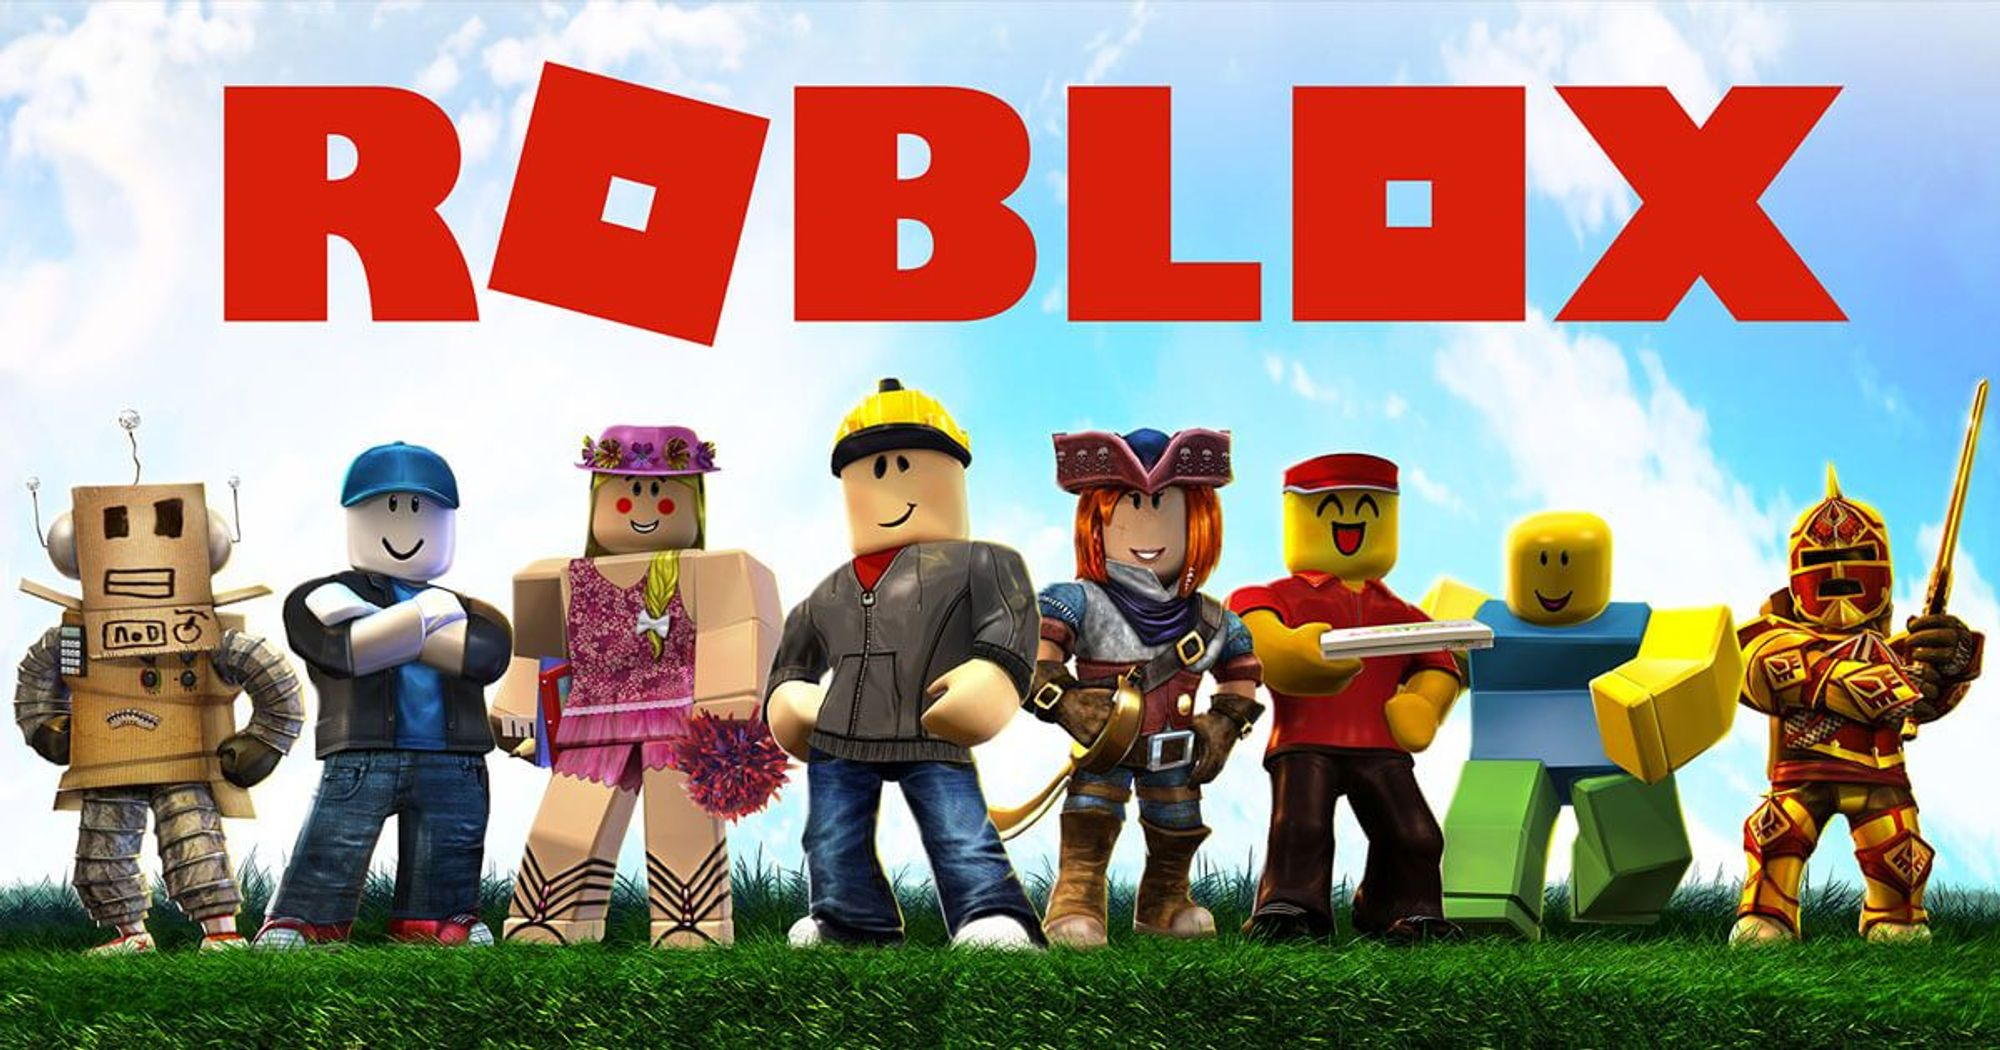 Best VPN for Roblox - Top 3 VPNs For Gaming